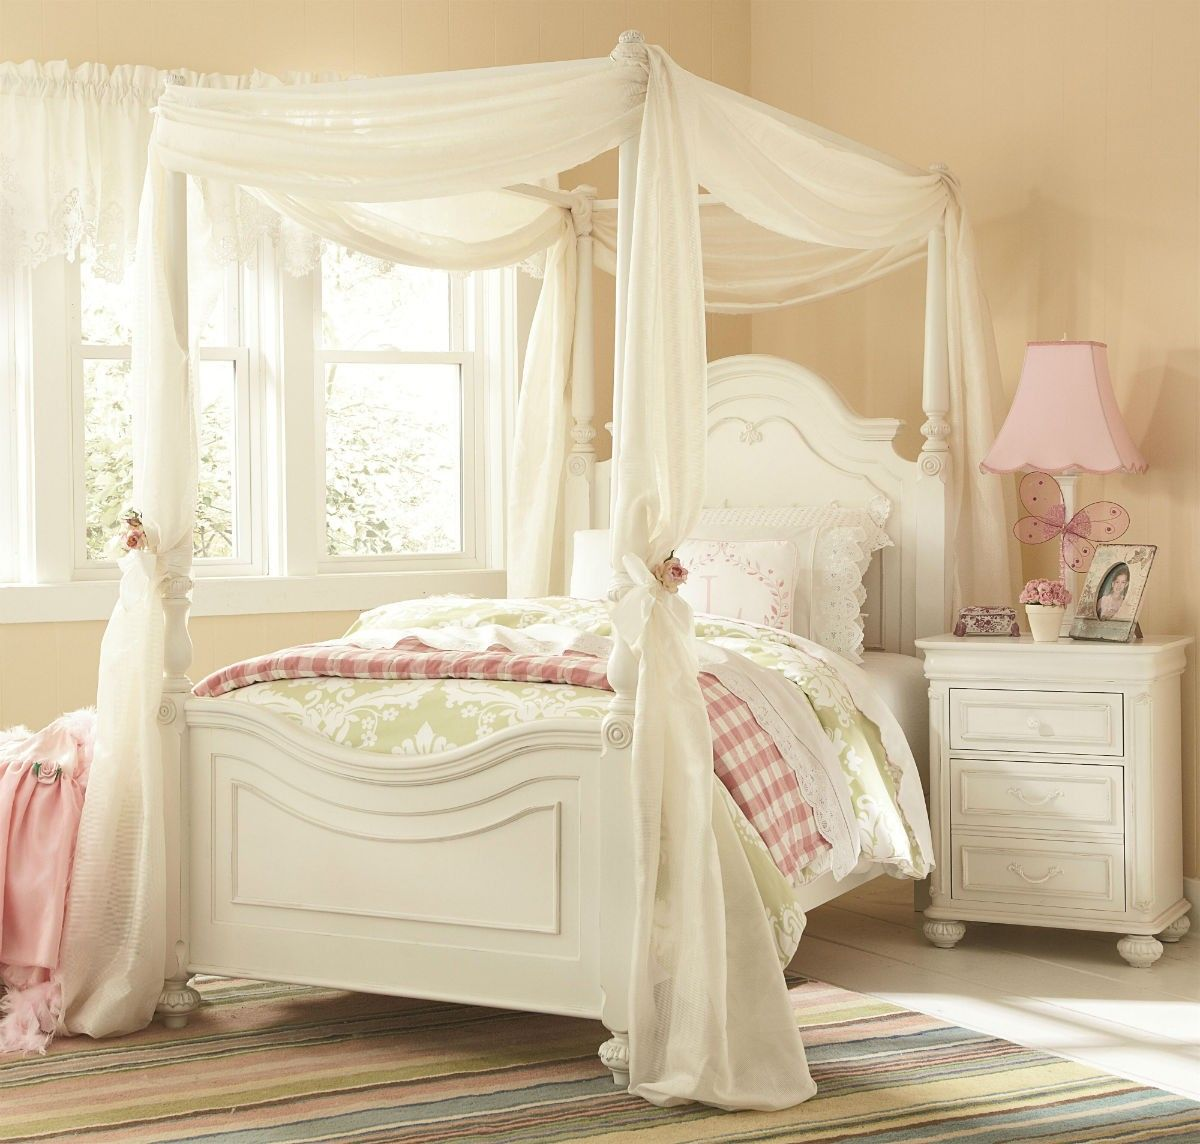 19 Fabulous Canopy Bed Designs For Your Little Princess & 19 Fabulous Canopy Bed Designs For Your Little Princess | Bed ...